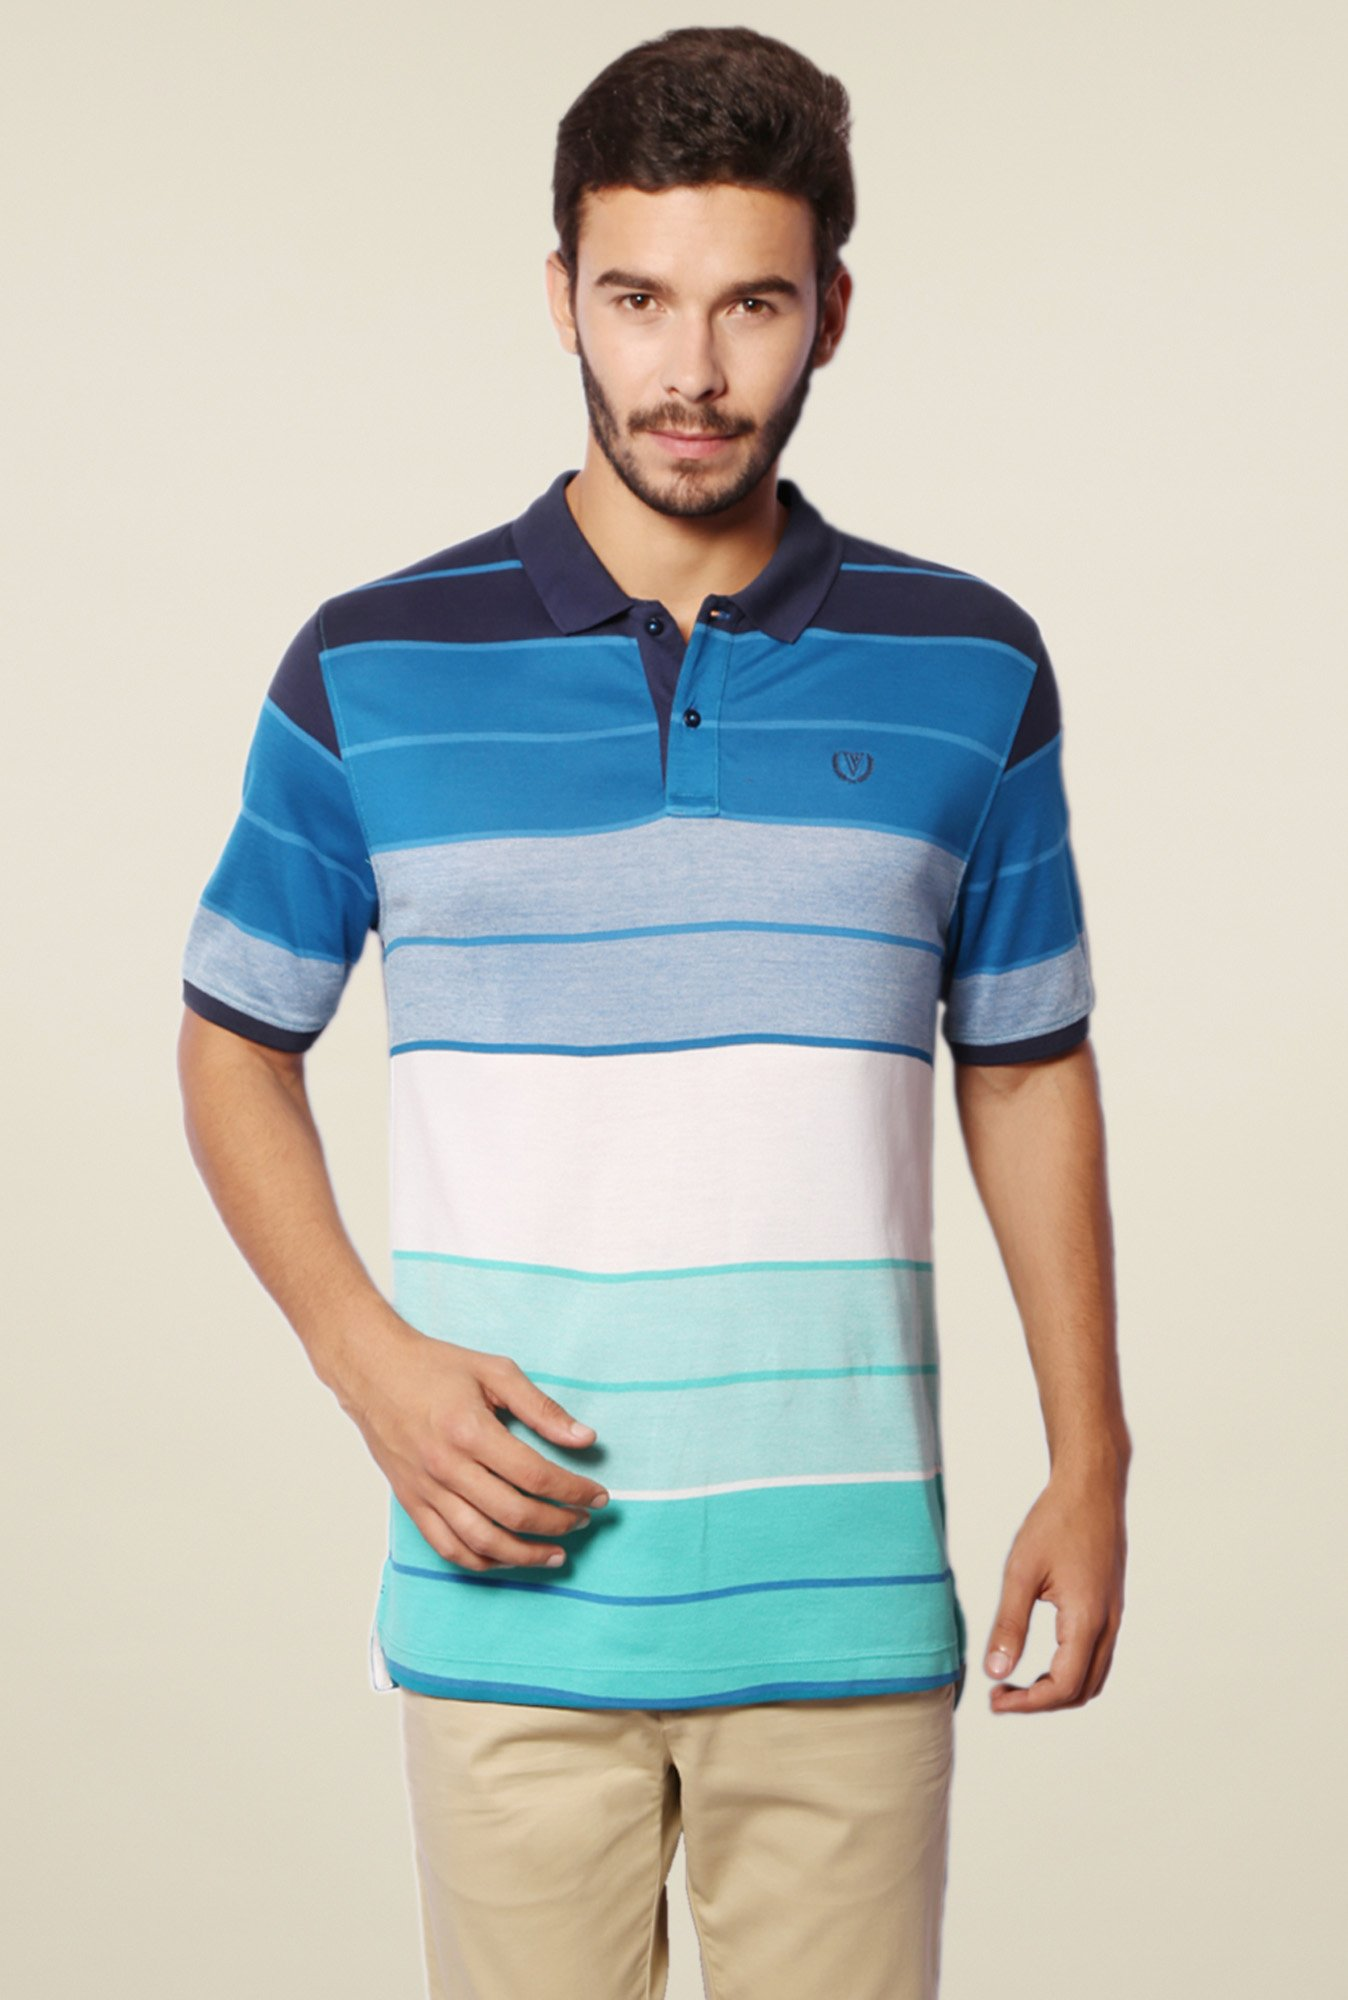 Van Heusen Multicolor Cotton Polo T-Shirt